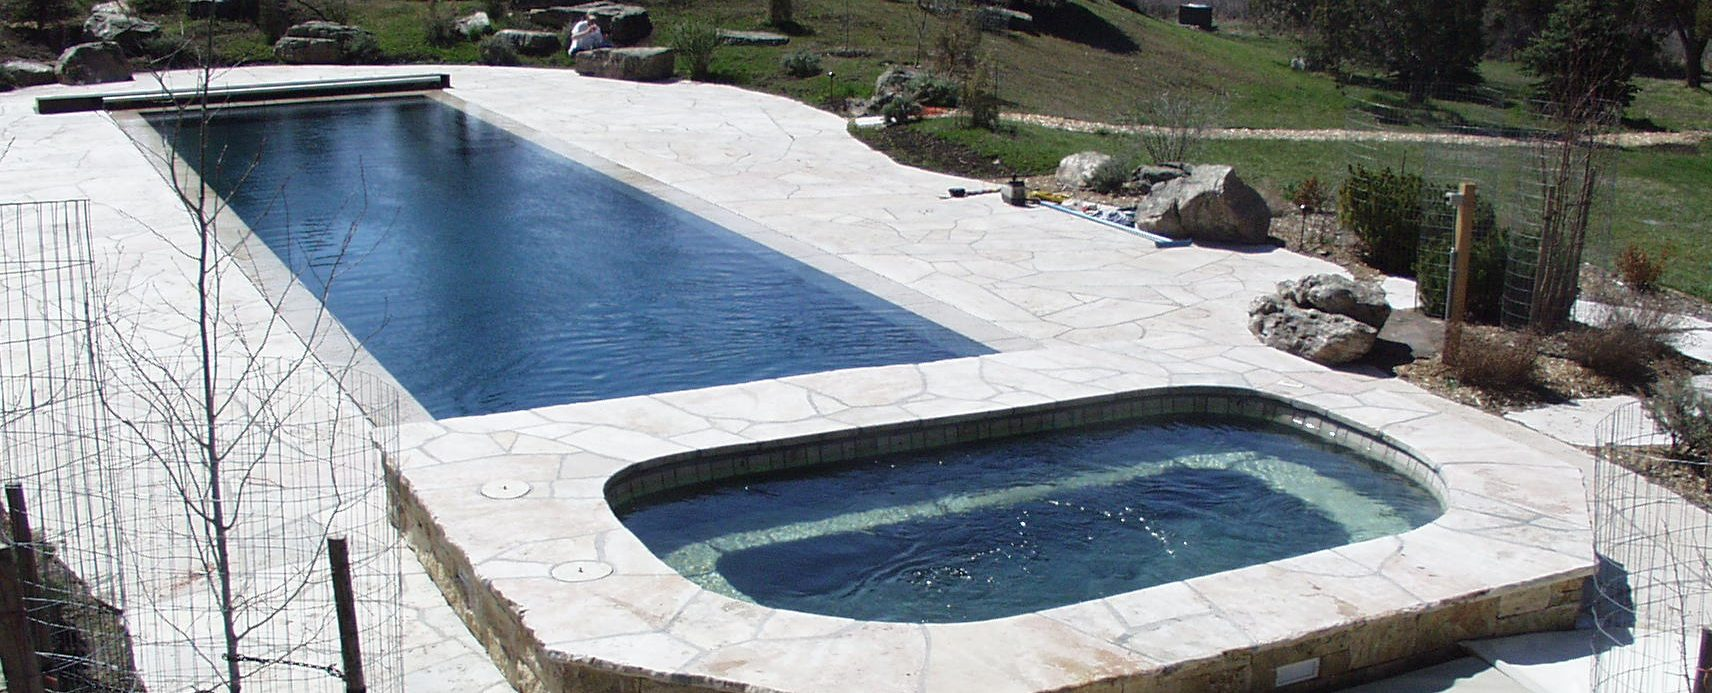 Are Chemicals for Pools & Spas the Same?